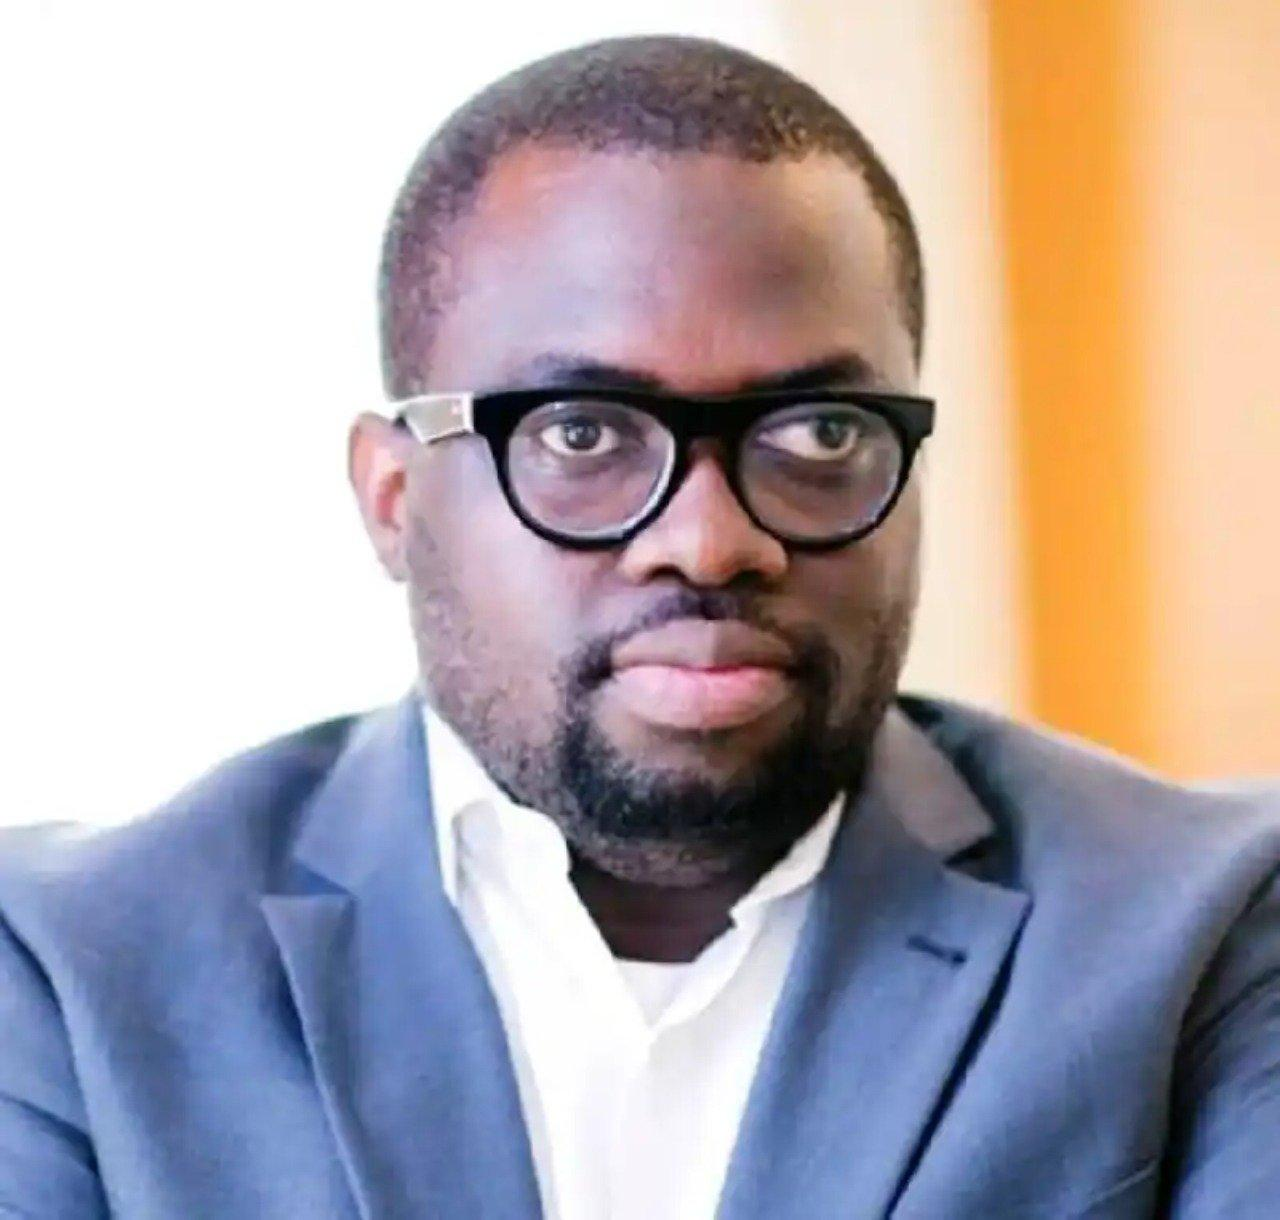 Twitter ban: Nigerians have rights to challenge the unconstitutional decision – cyber security expert